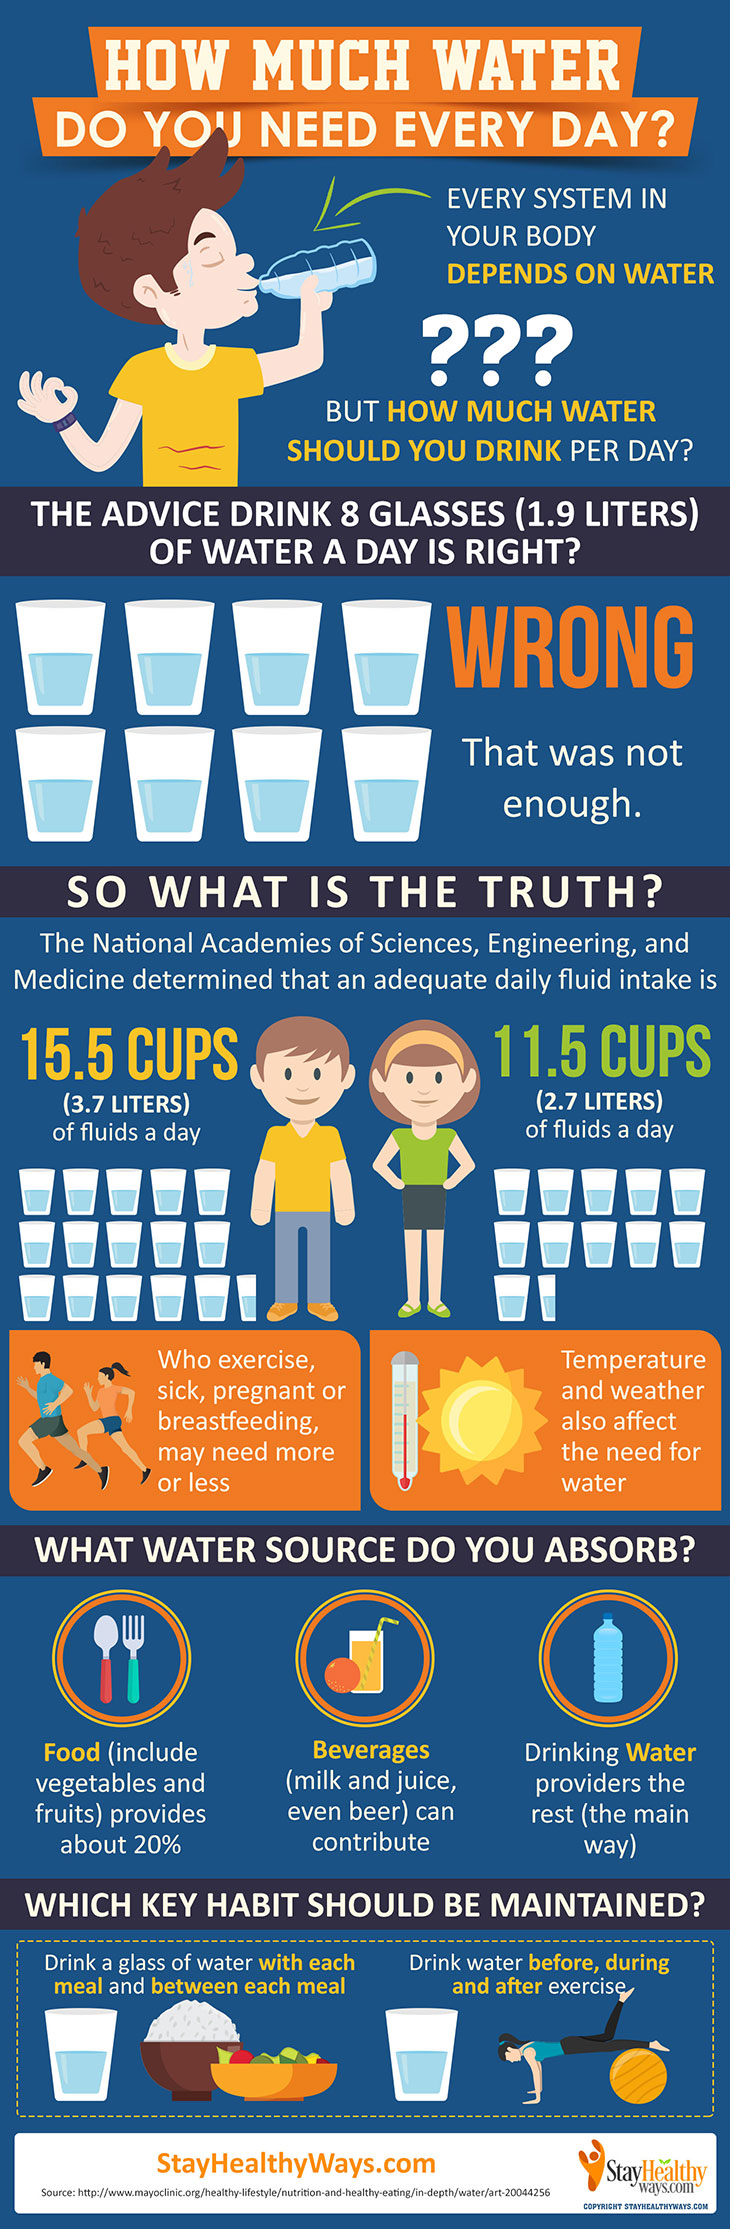 How much water do you need every day